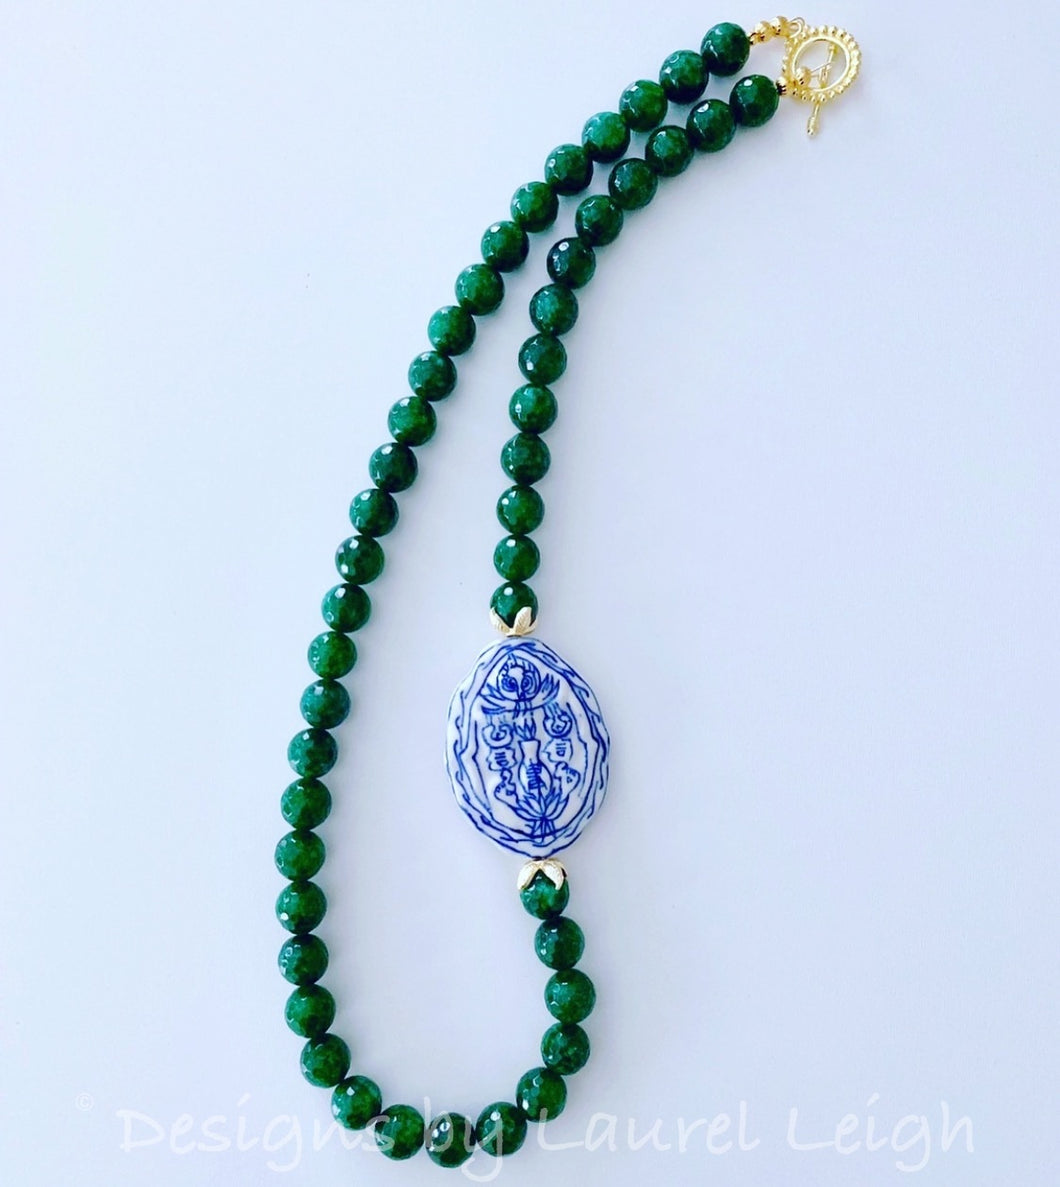 Green Jade Chinoiserie Statement Necklace - Ginger jar